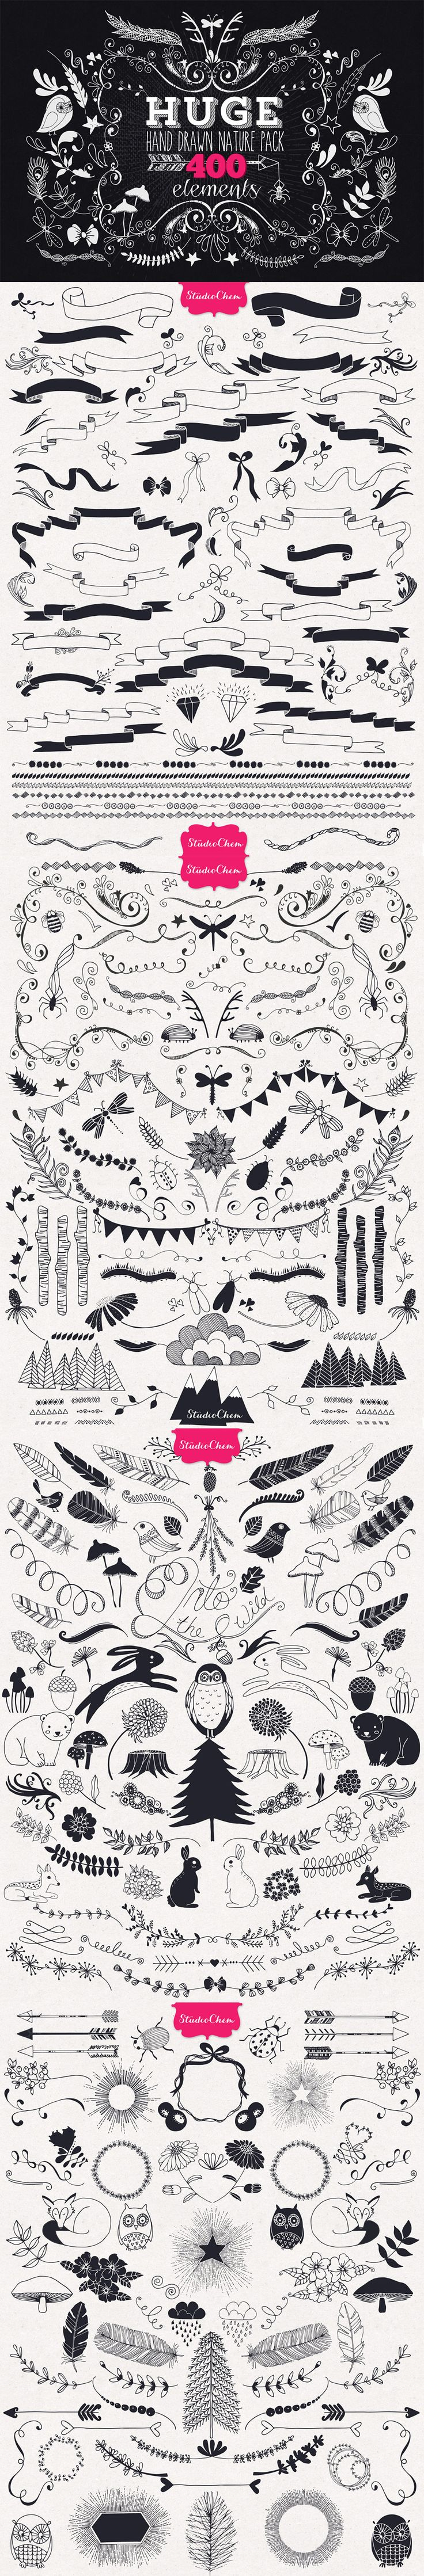 Huge Hand Drawn Nature Pack Elements by Studio Chem | The Comprehensive, Creative Vectors Bundle Mar 2015 from Design Cuts